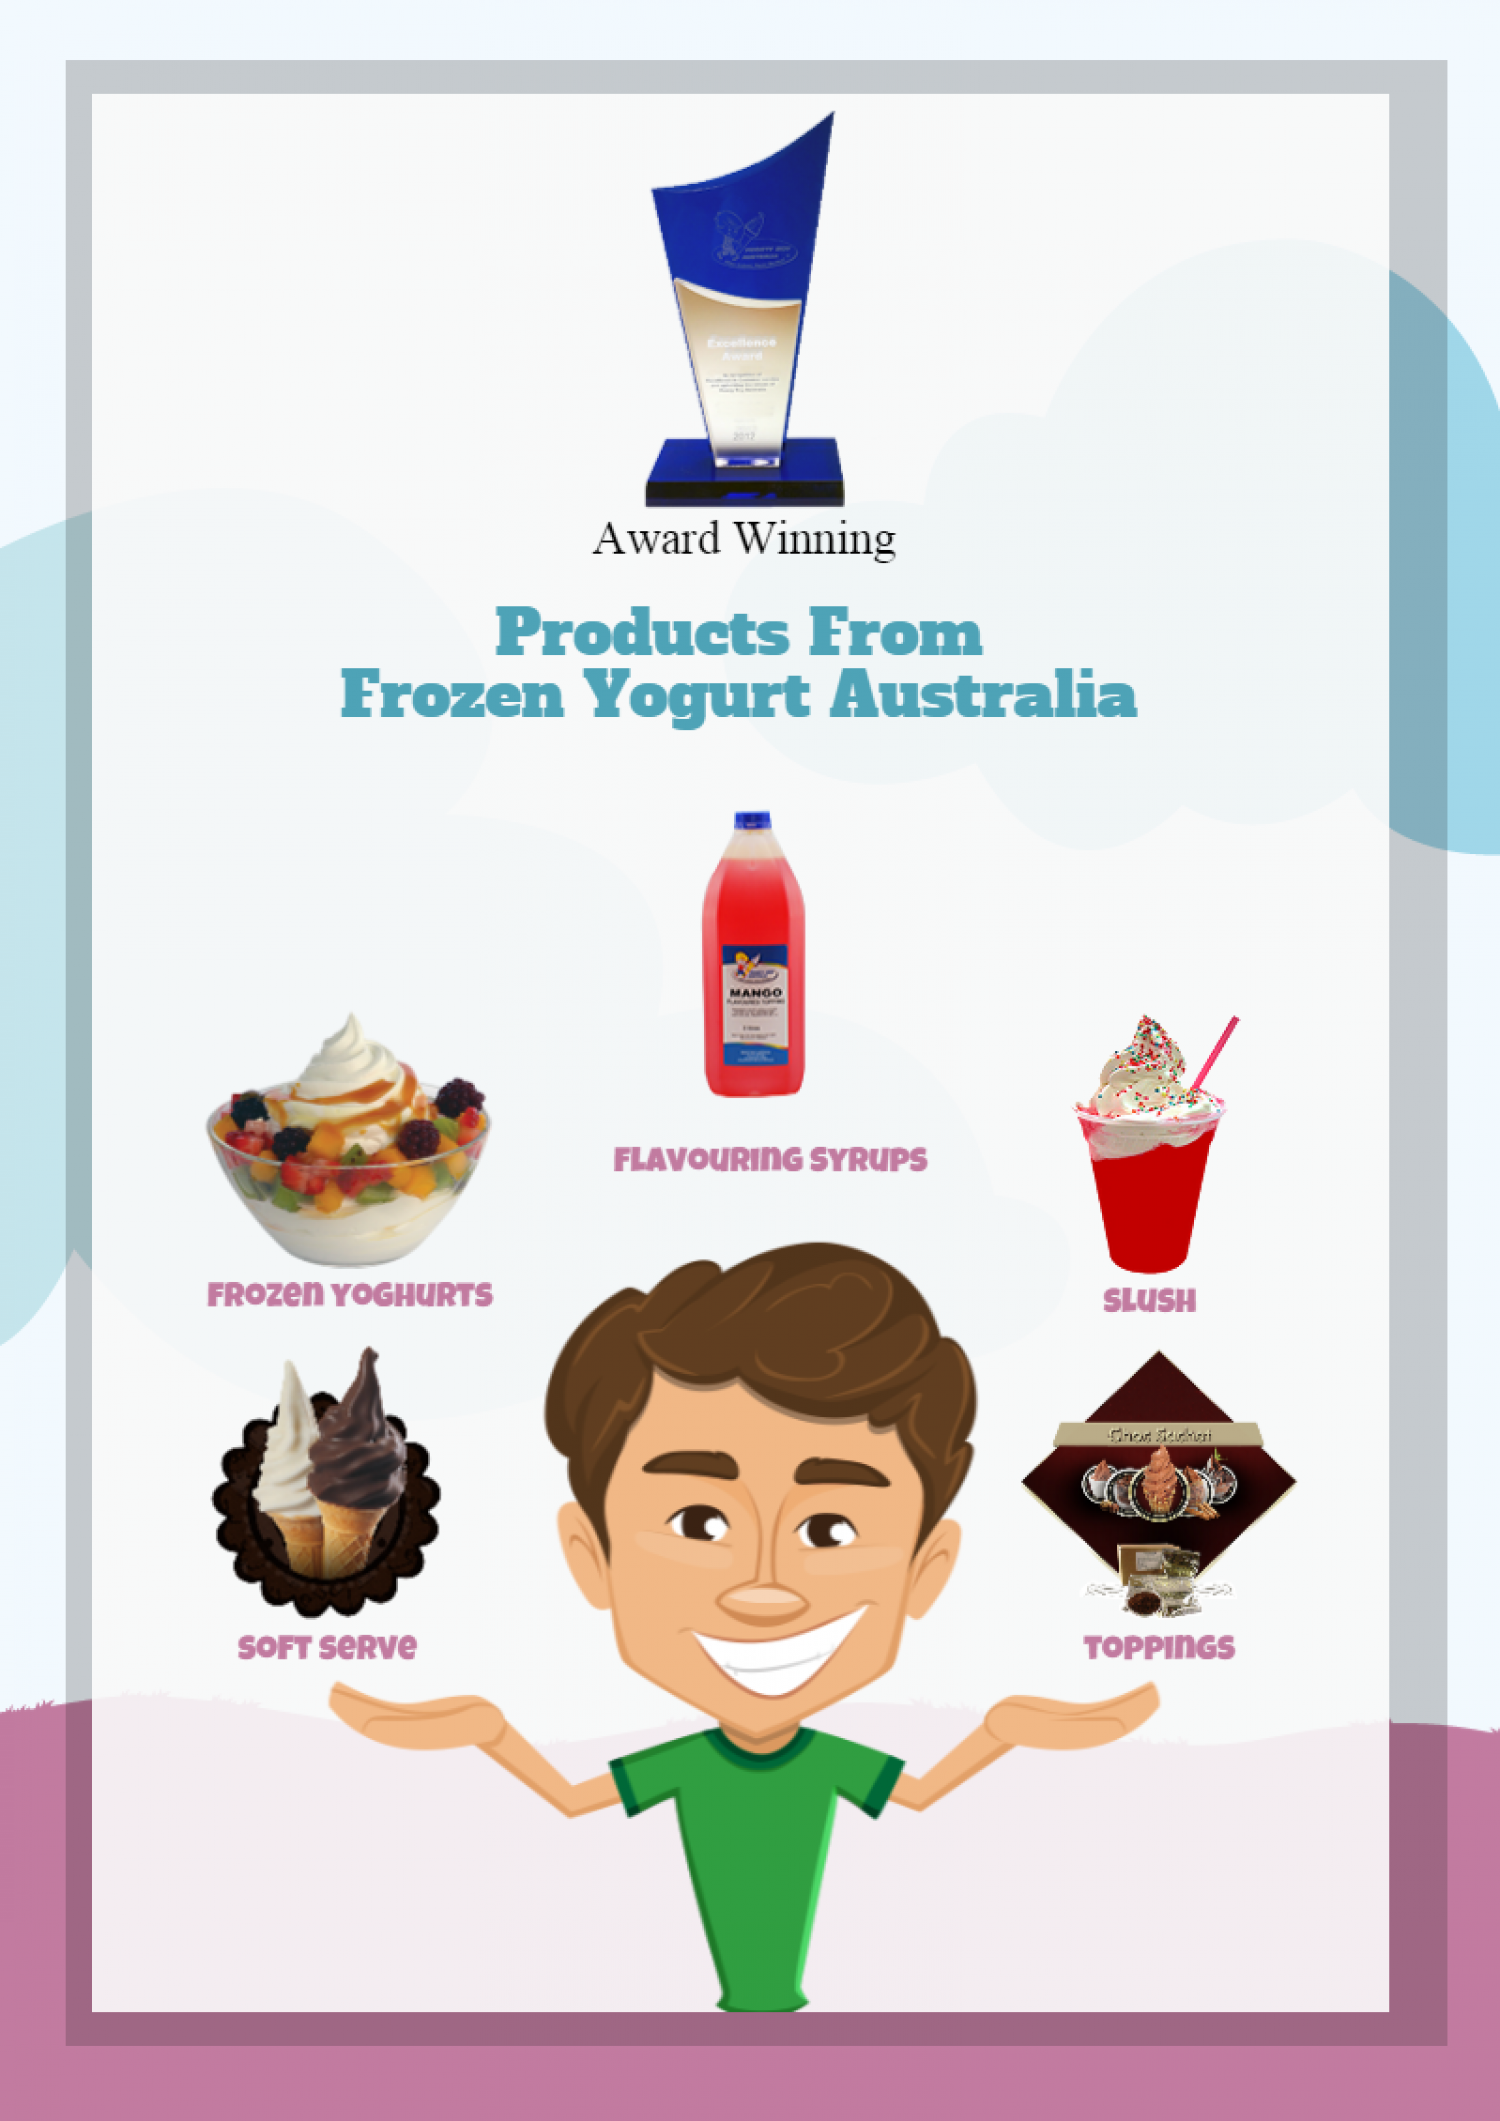 Frozen yogurt Australia - Award winning products Infographic